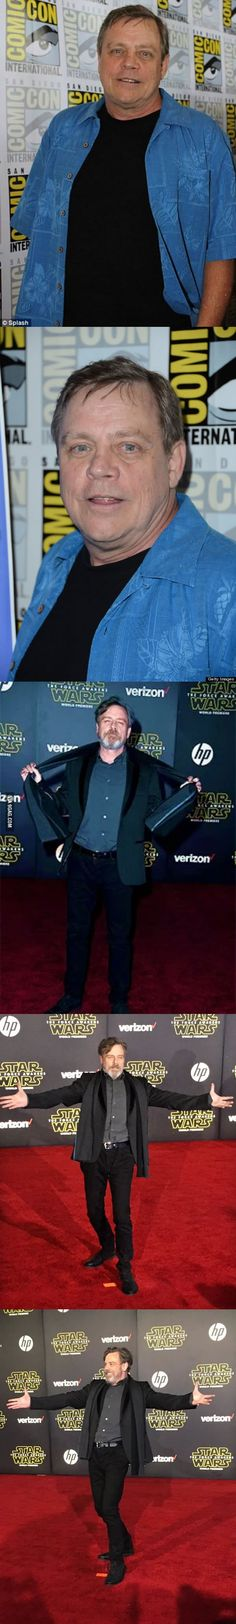 Mark Hamill's change from 2012 to 2015. Major props. - 9GAG